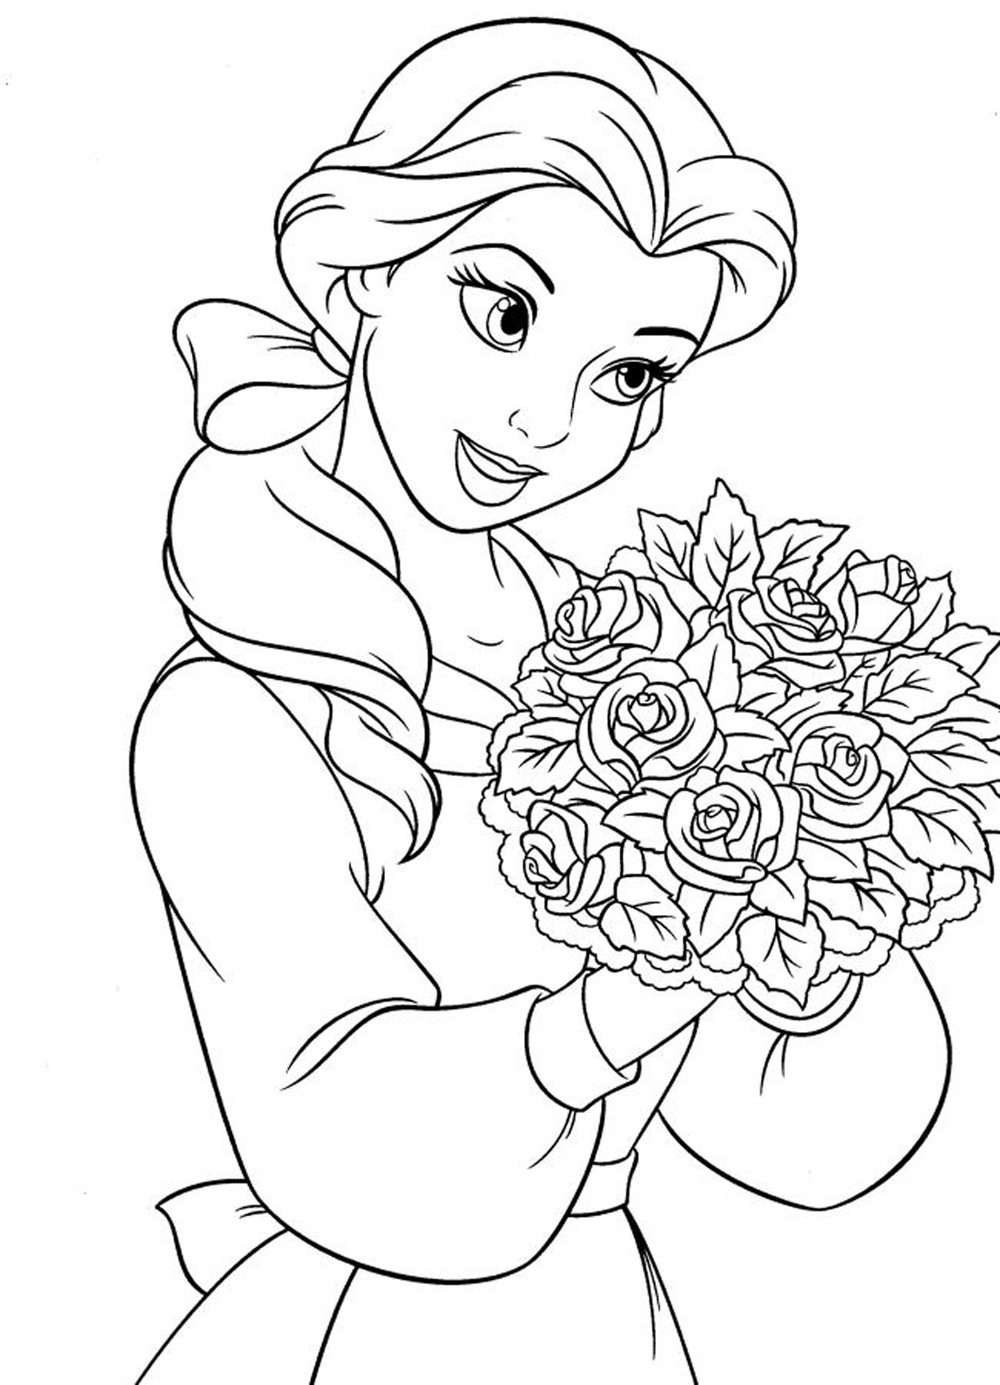 coloring book pages disney princesses - photo#11